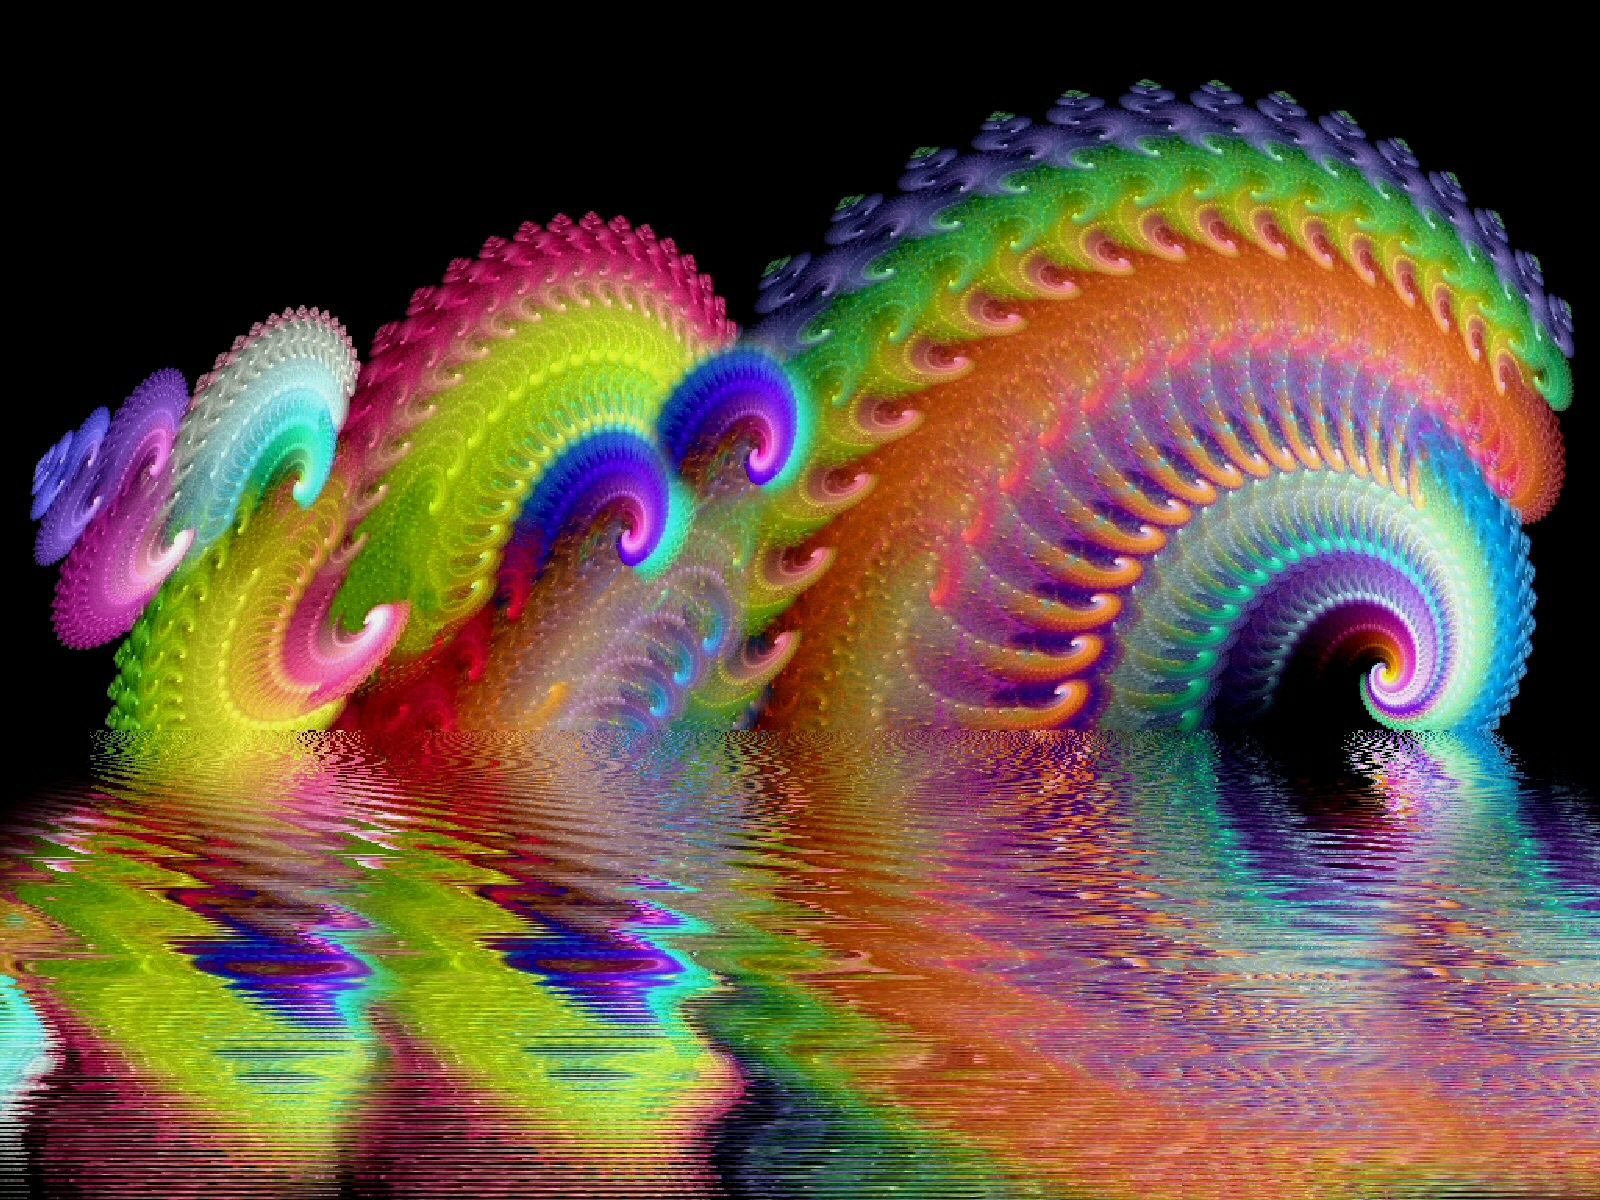 Trippy Wallpaper Desktop Images Pictures   Becuo 1600x1200